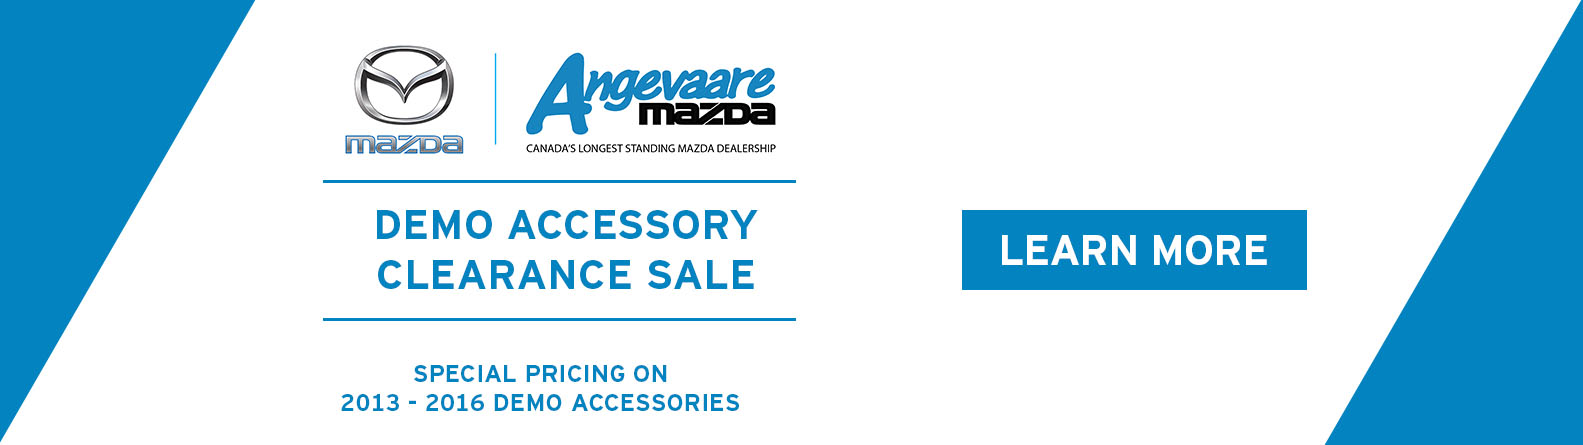 Demo Accessory Clearance Sale